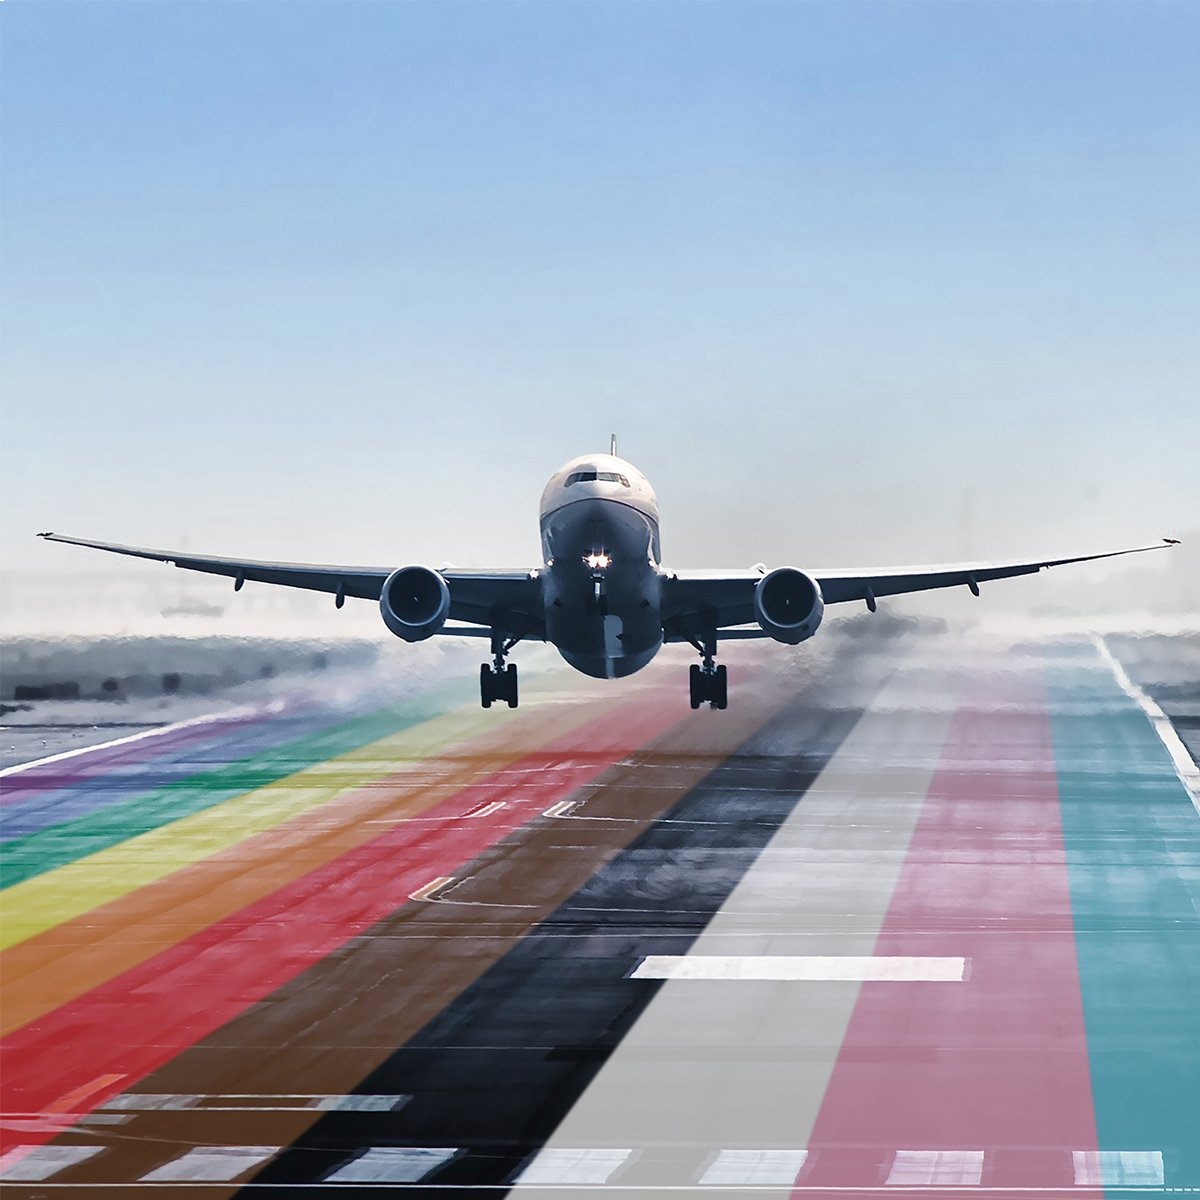 Bound by a universal respect for the dignity of all people, we will always be dedicated to flying higher for our customers and one another. Let your true colors fly. #Pride2020 #UnitedPride